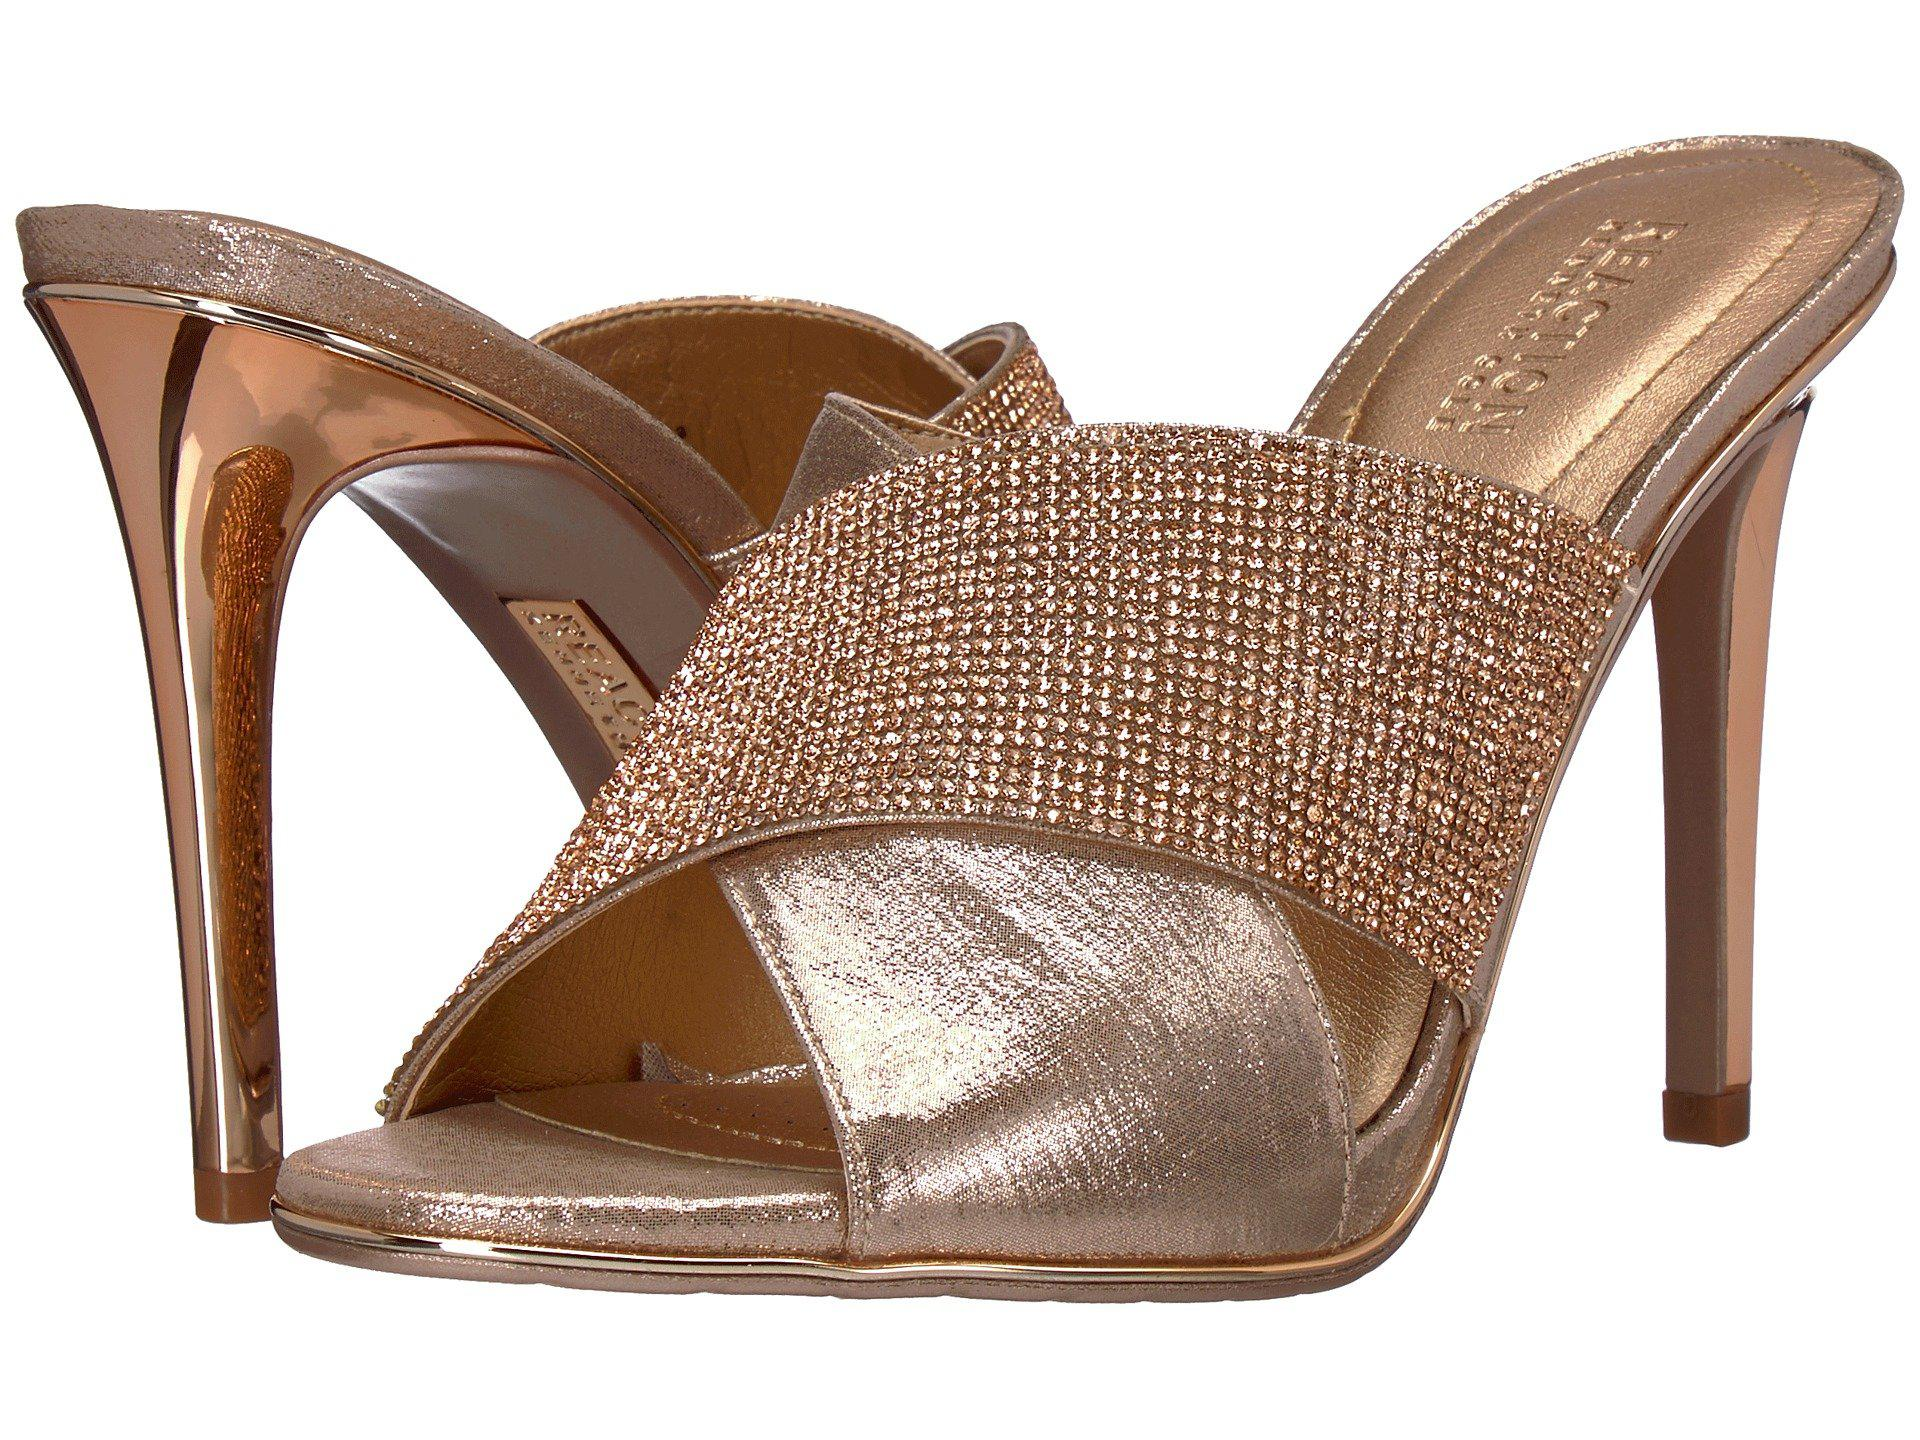 Kenneth Cole Reaction Look Beyond Heeled Sandal (Women's)